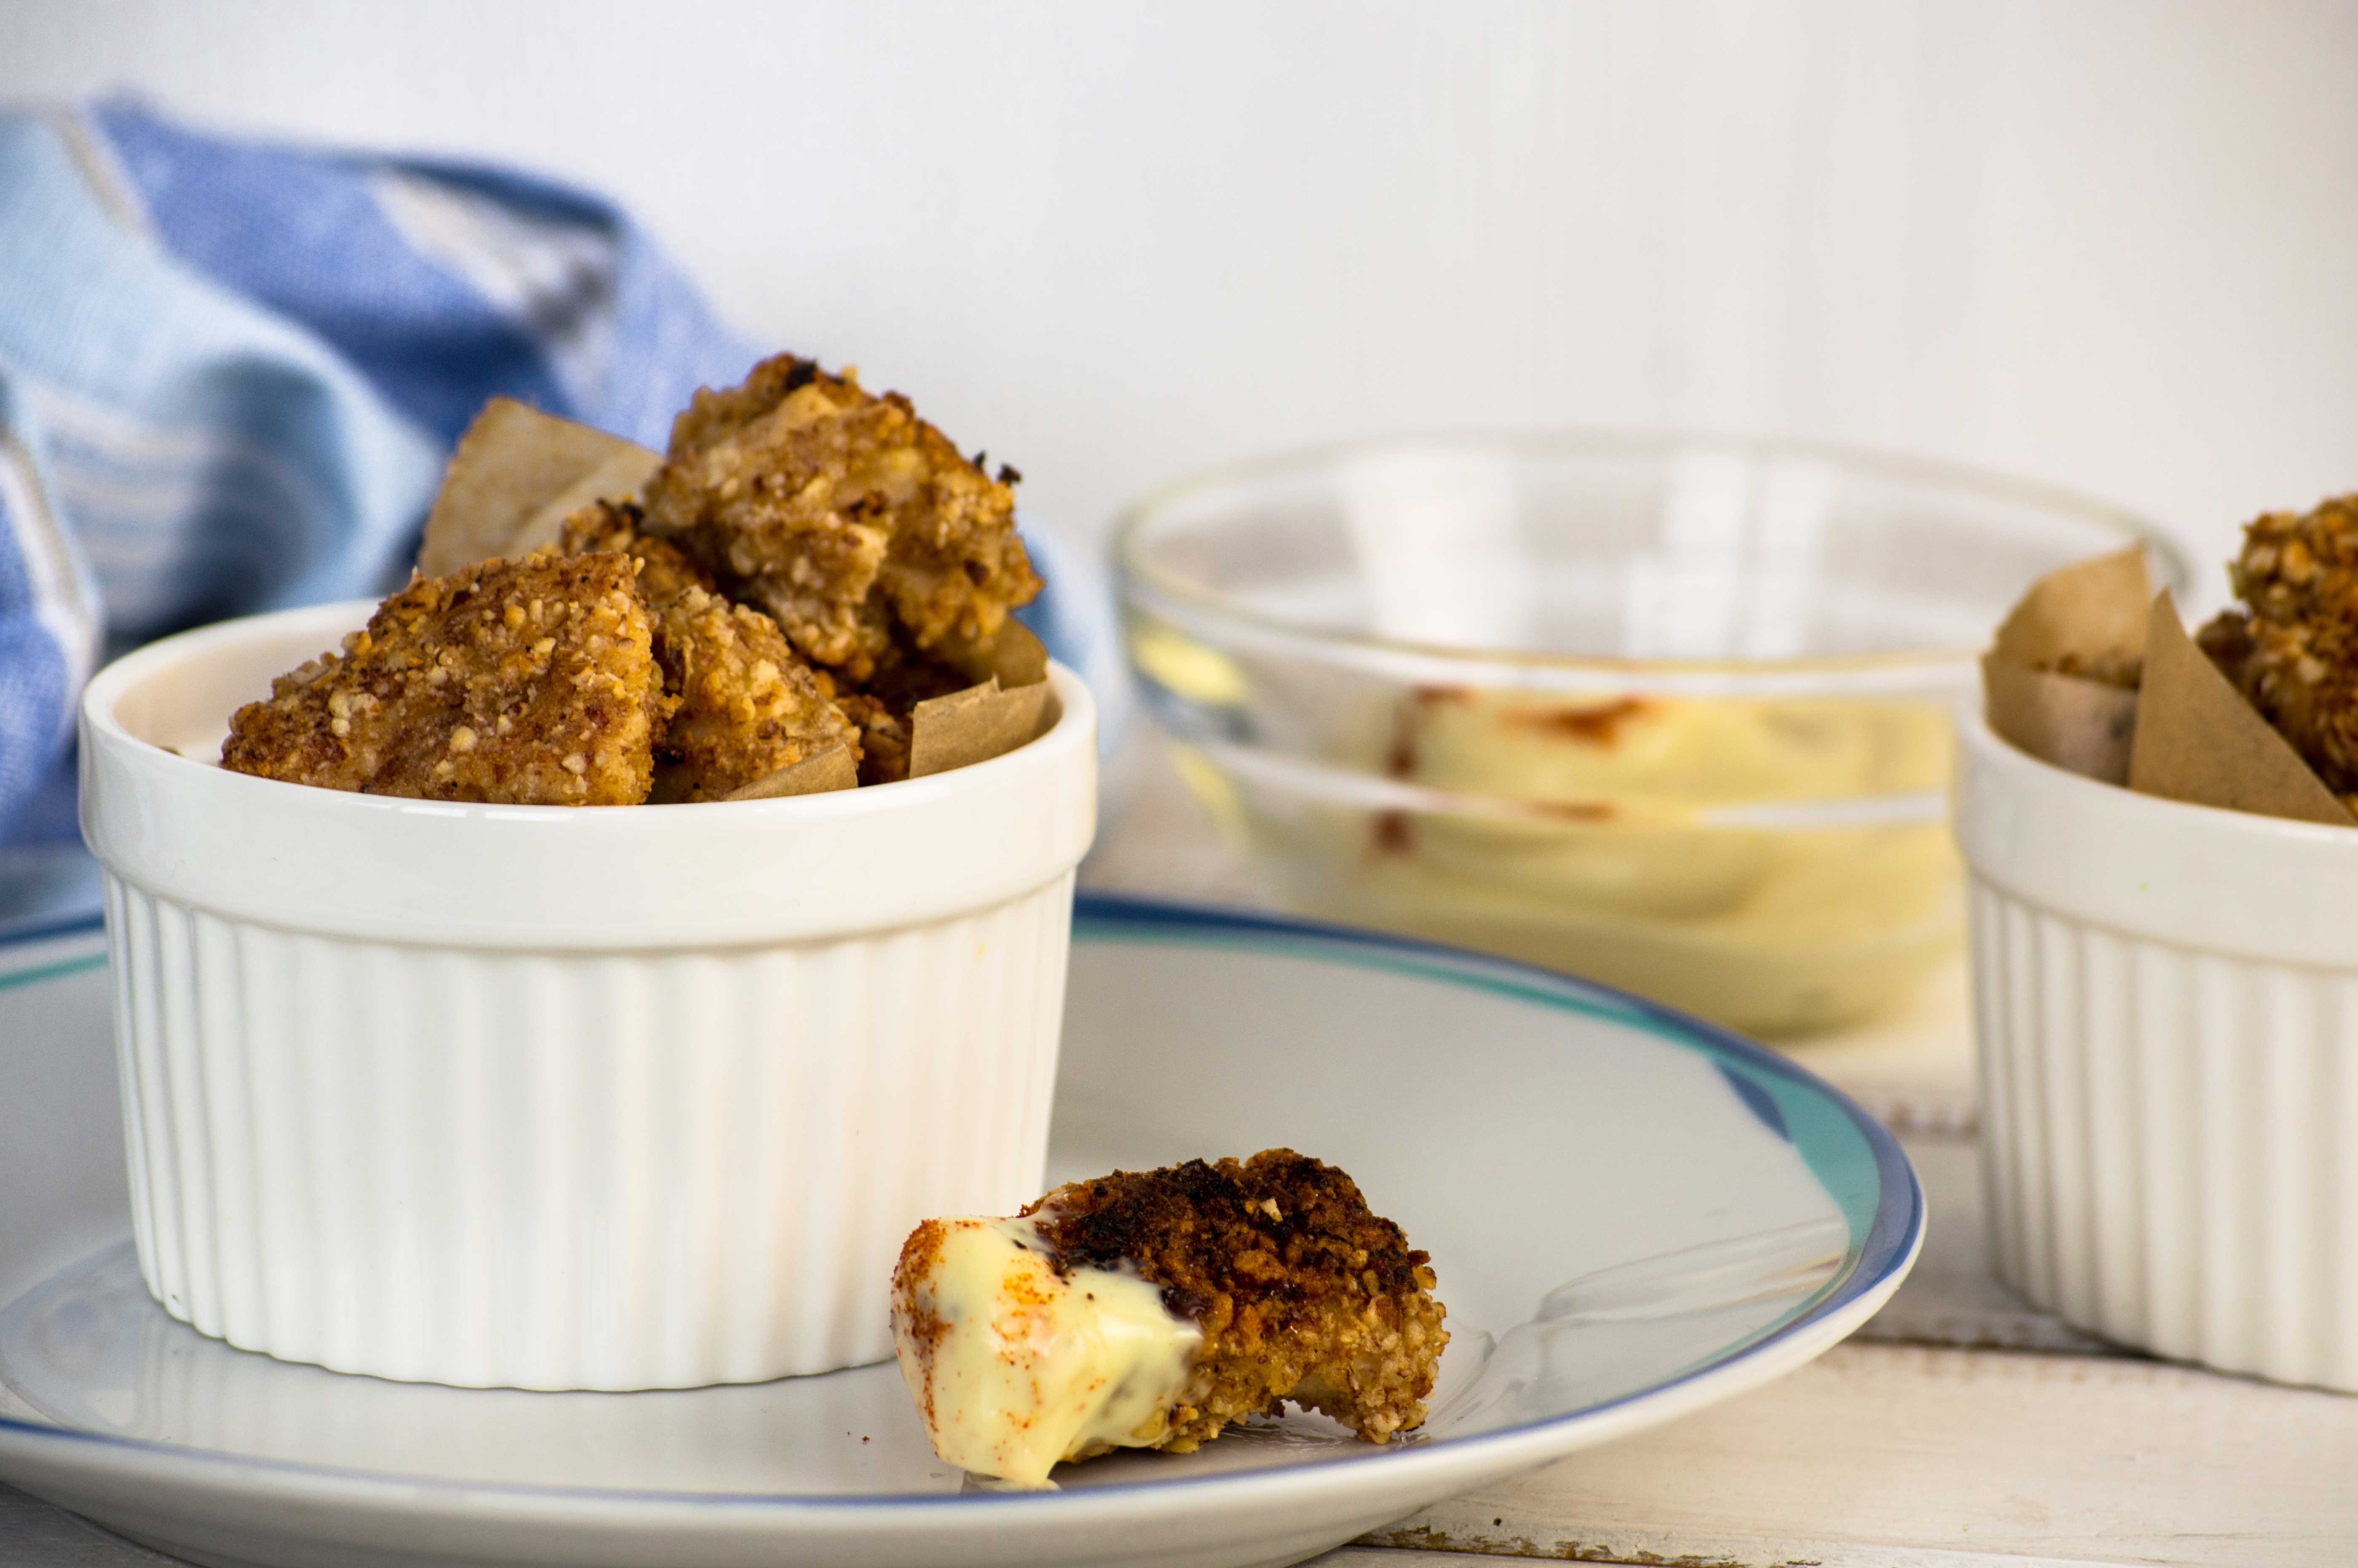 Almond-Macadamia-Crusted-Nuggets